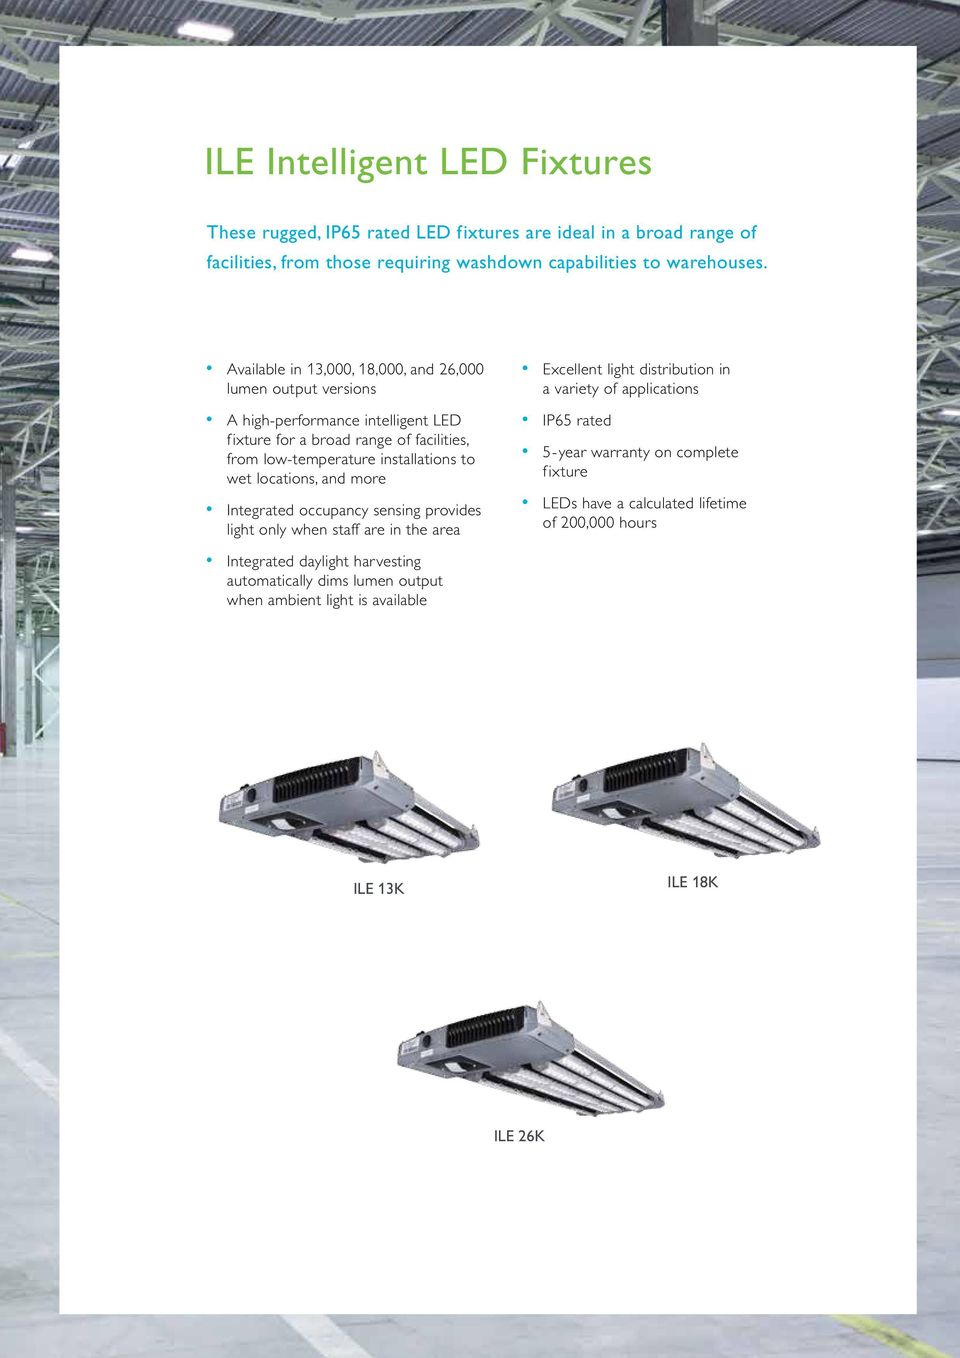 wet locations, and more Integrated occupancy sensing provides light only when staff are in the area Excellent light distribution in a variety of applications IP65 rated 5-year